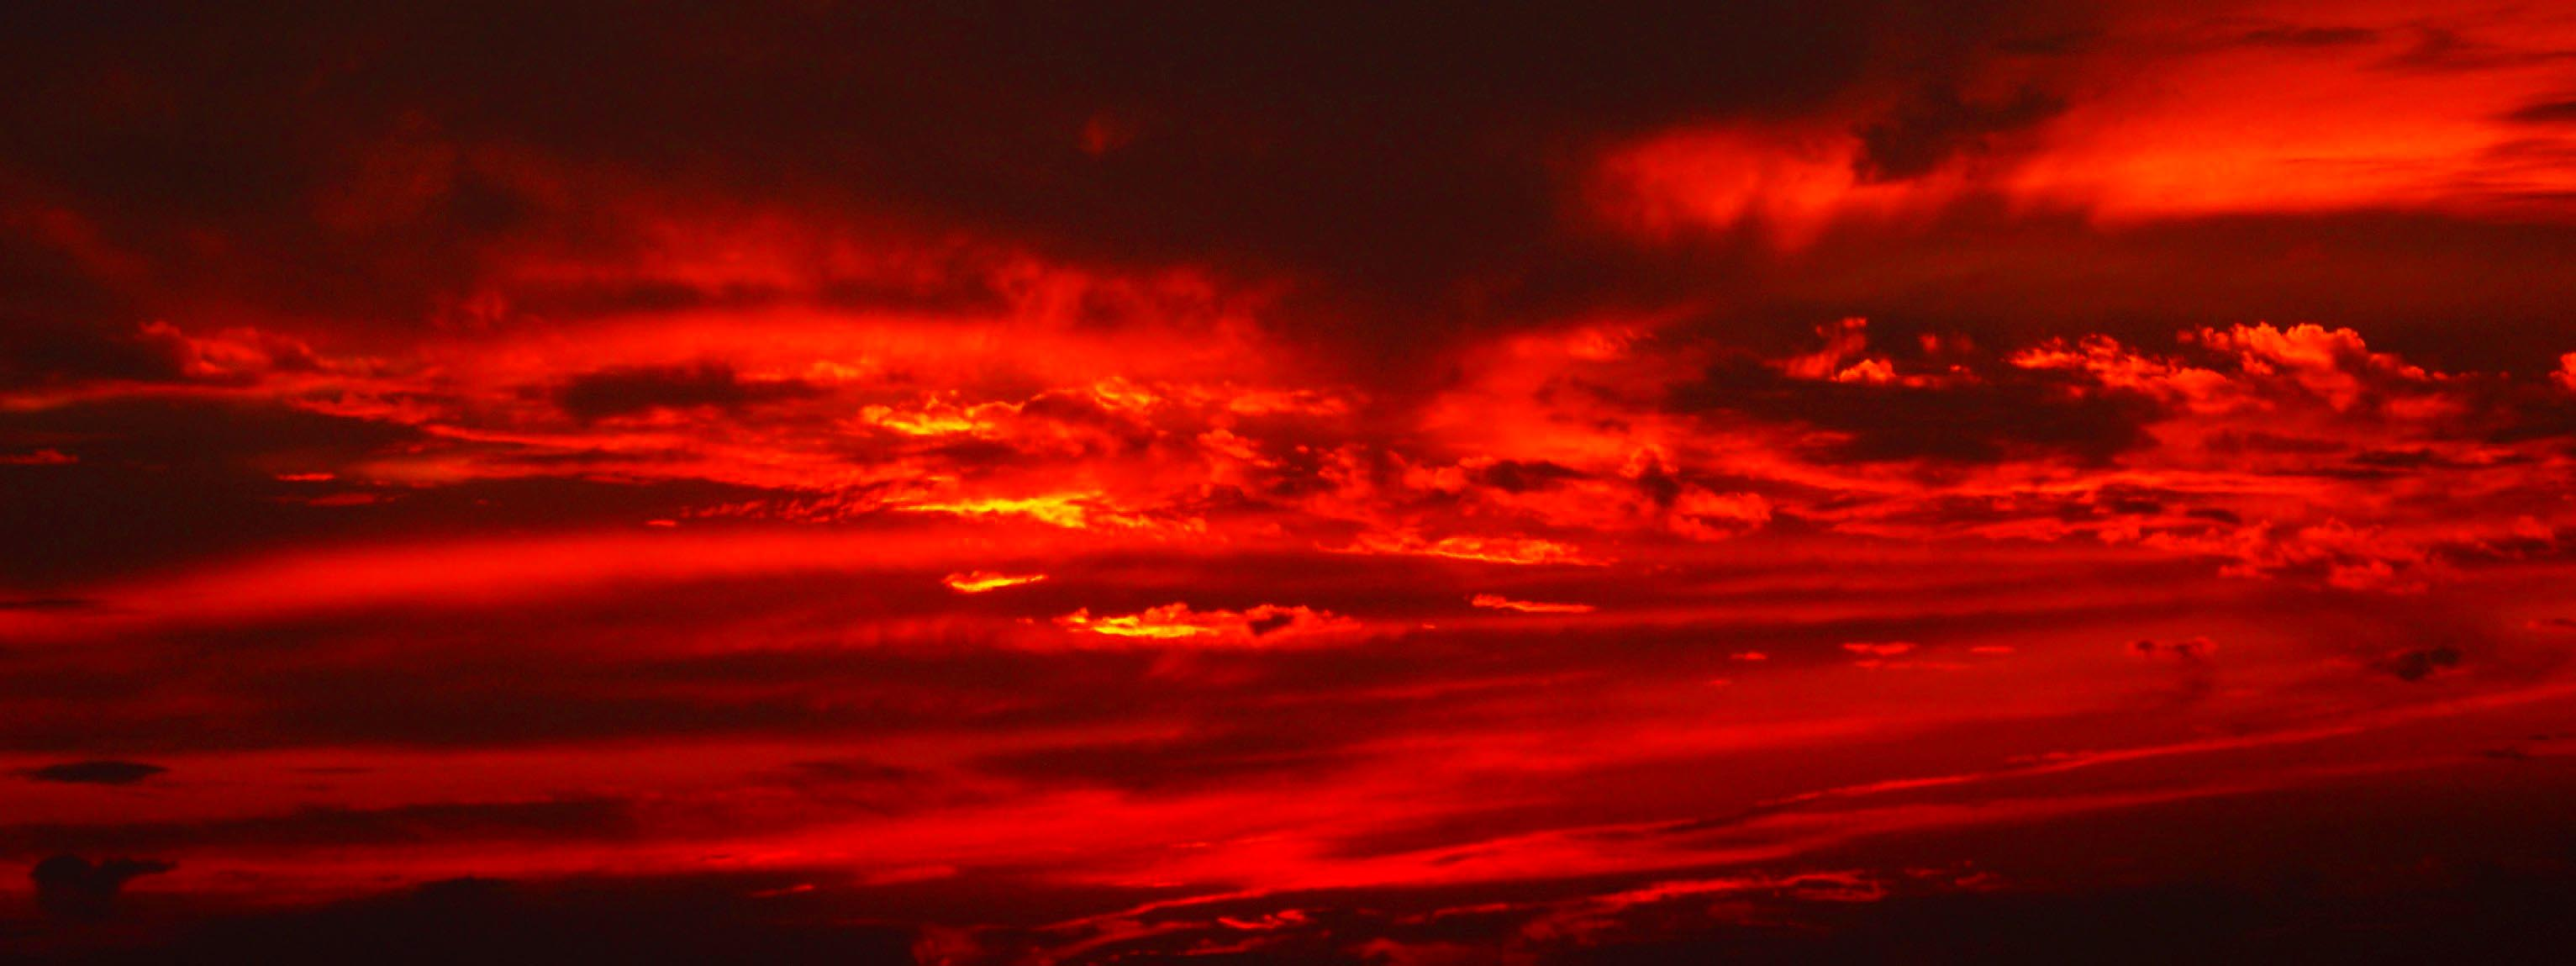 Free Photo Red Sky Burned Clouds Cloudy Free Download